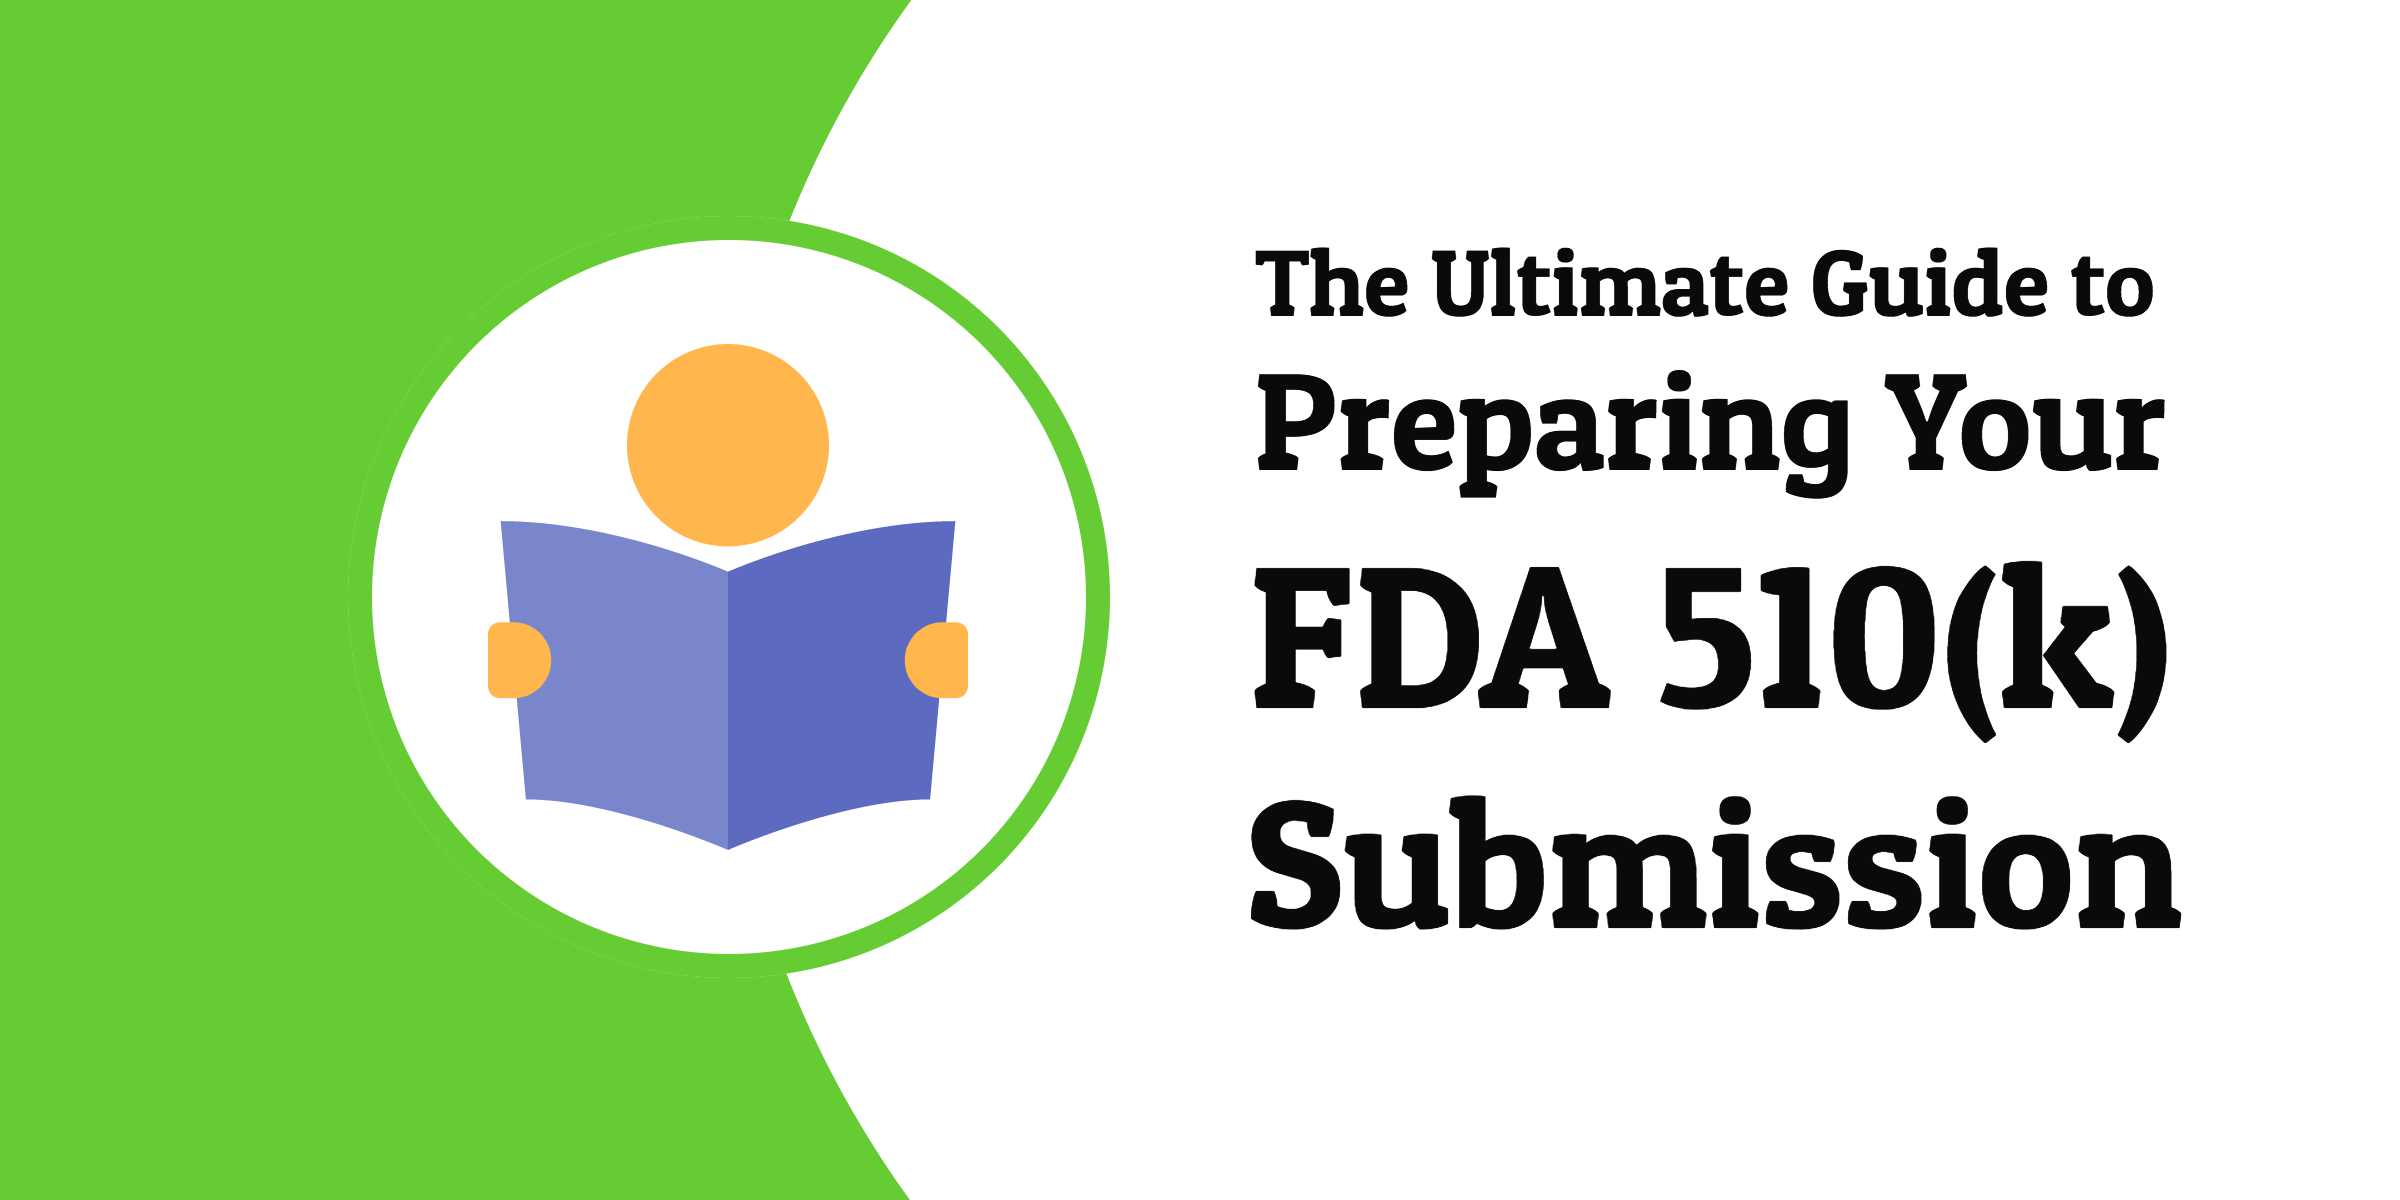 The Ultimate Guide to Preparing Your FDA 510(k) Submission - Featured Image